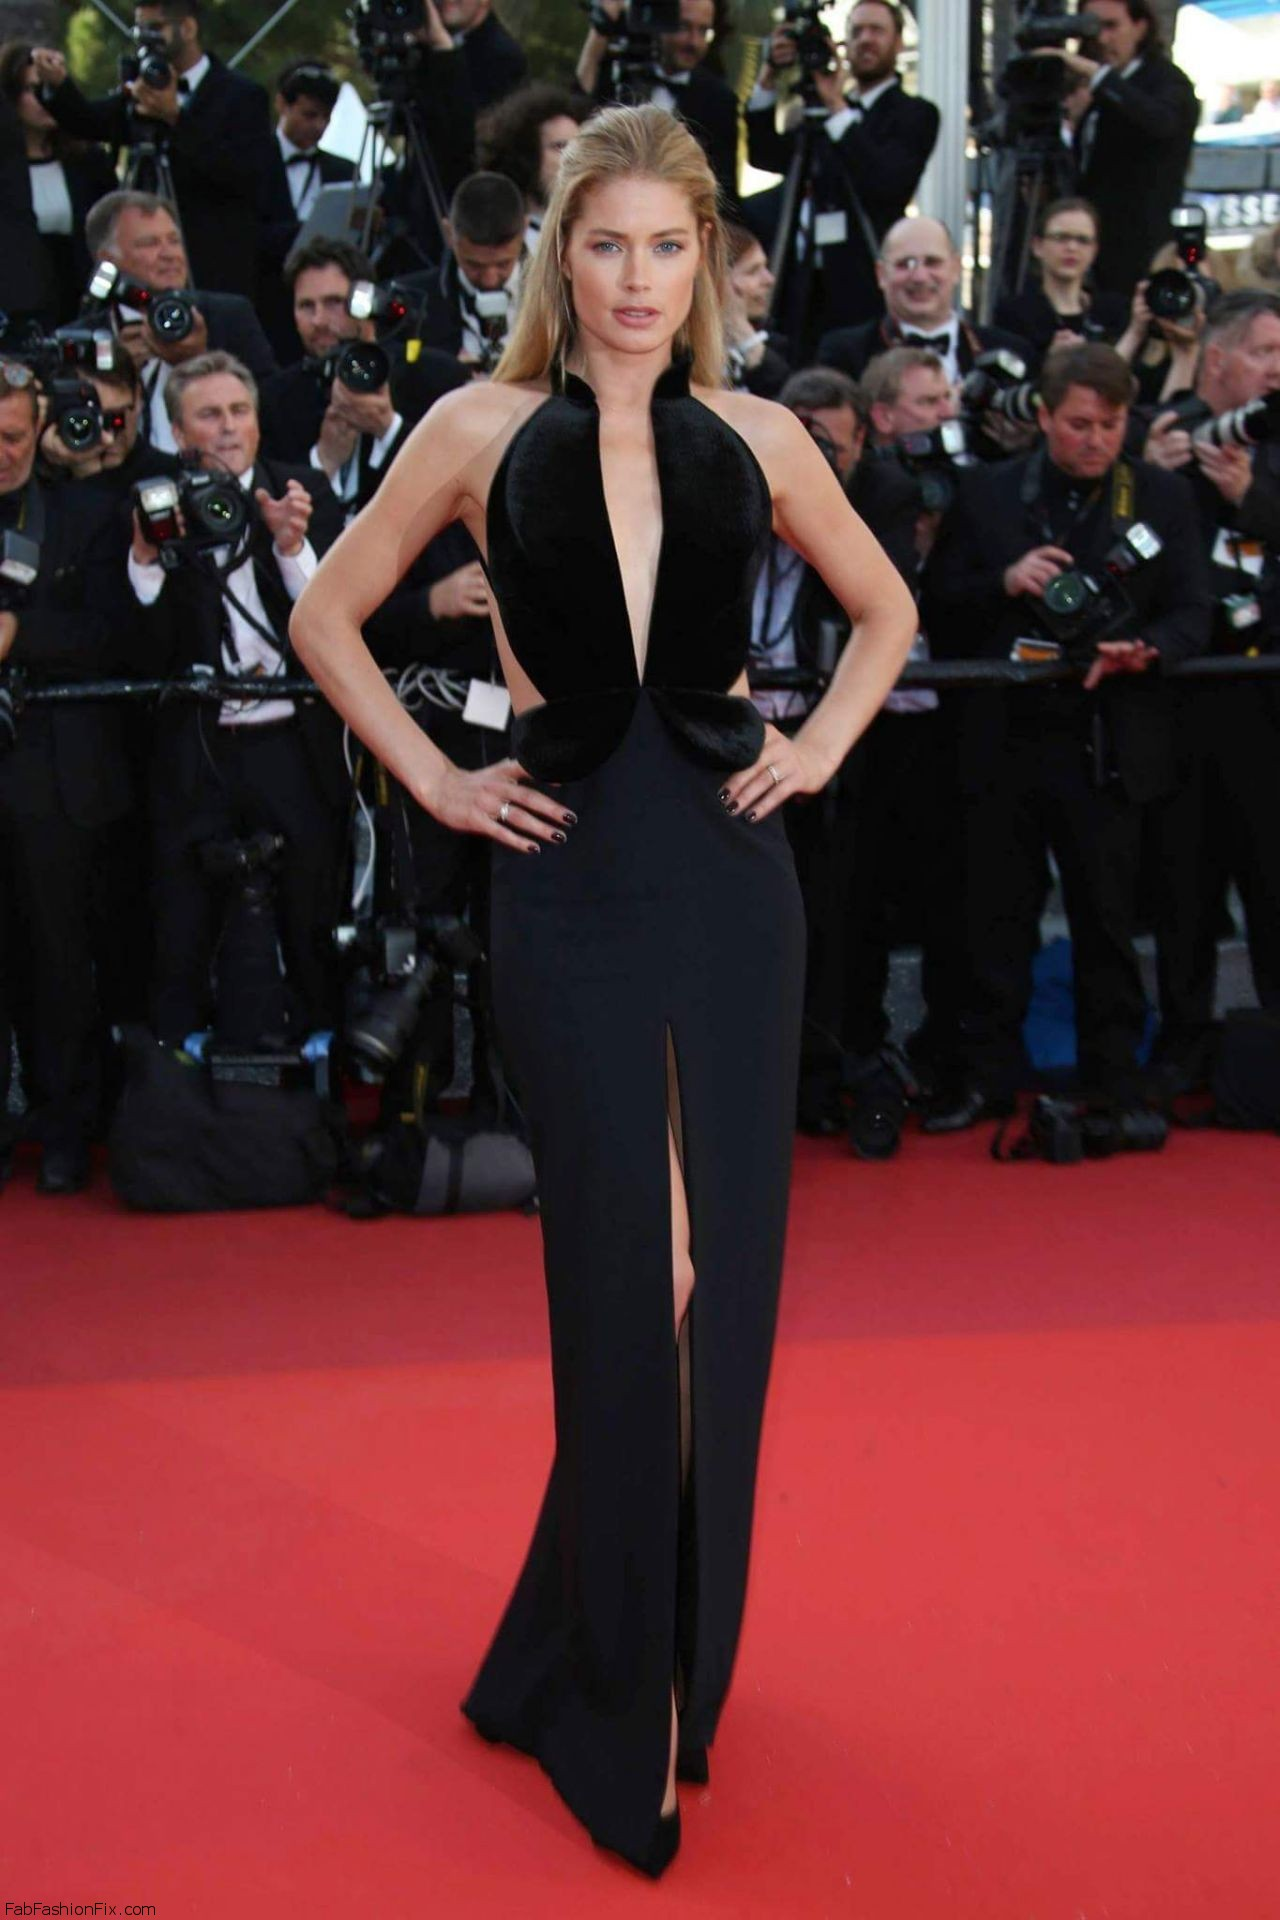 doutzen-kroes-cafe-society-premiere-and-the-opening-night-gala-2016-cannes-film-festival-7